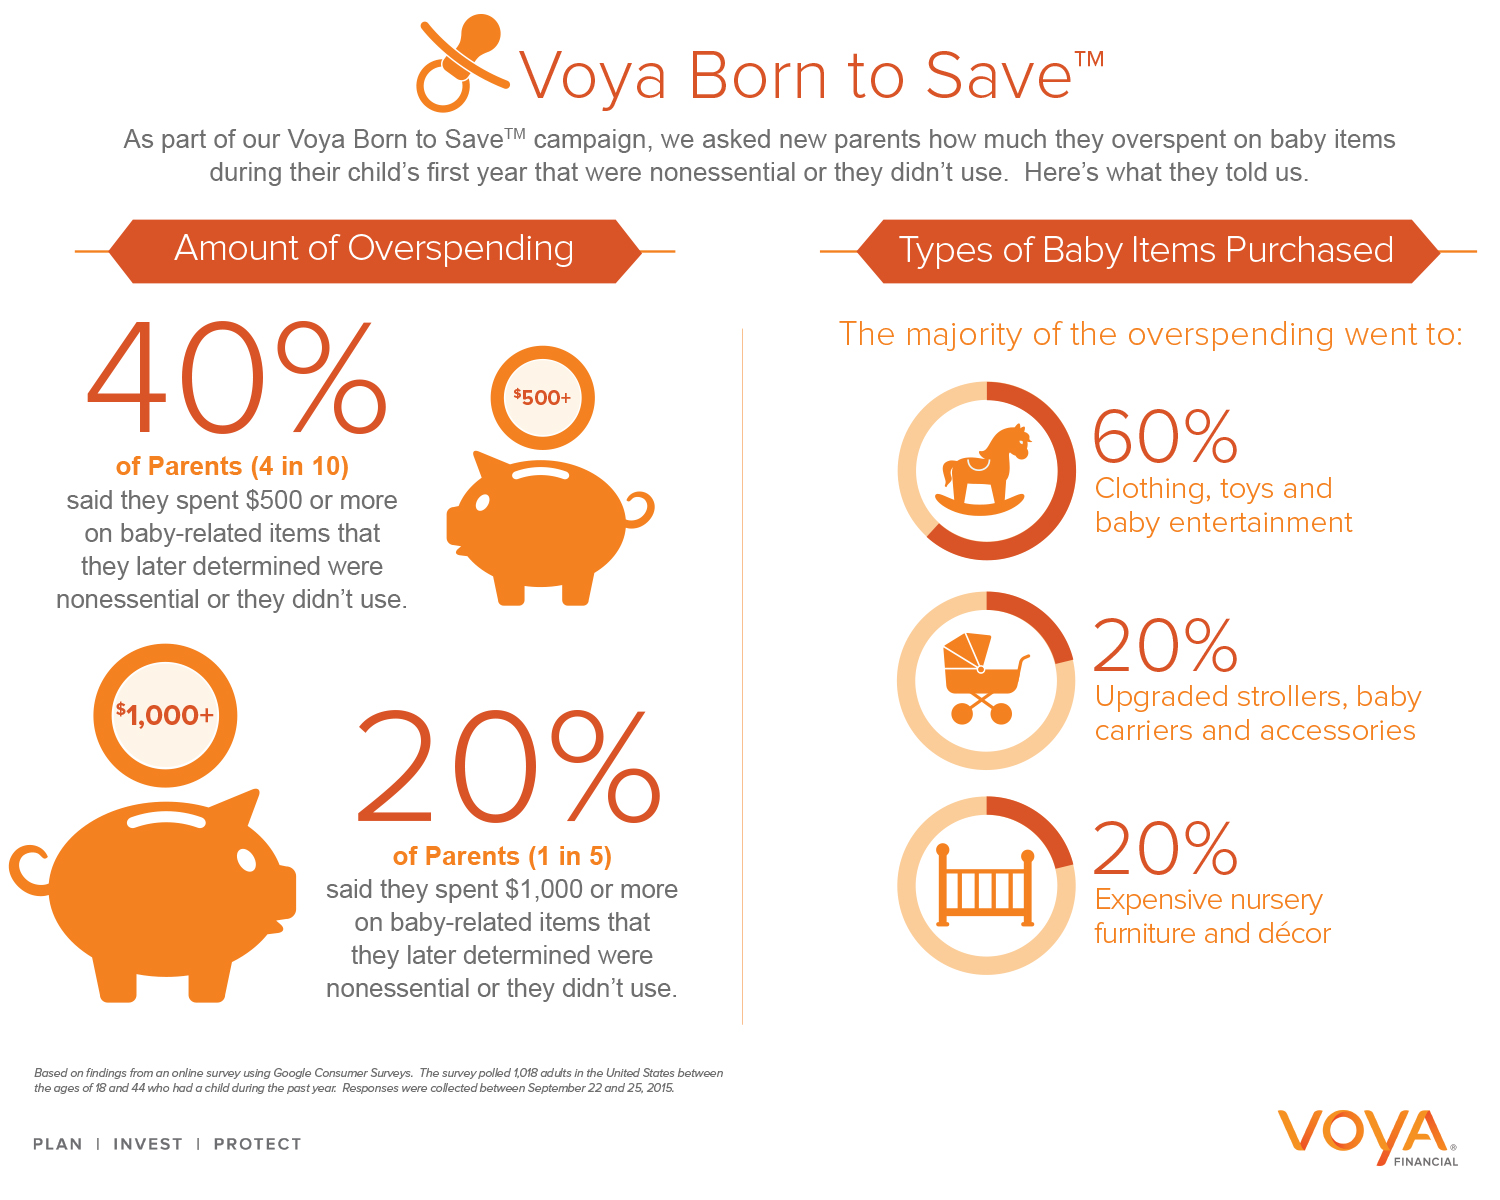 We asked new parents how much they overspent on nonessential baby items during their child's first year. What they told us shows there may always be a few extra dollars to put towards retirement.